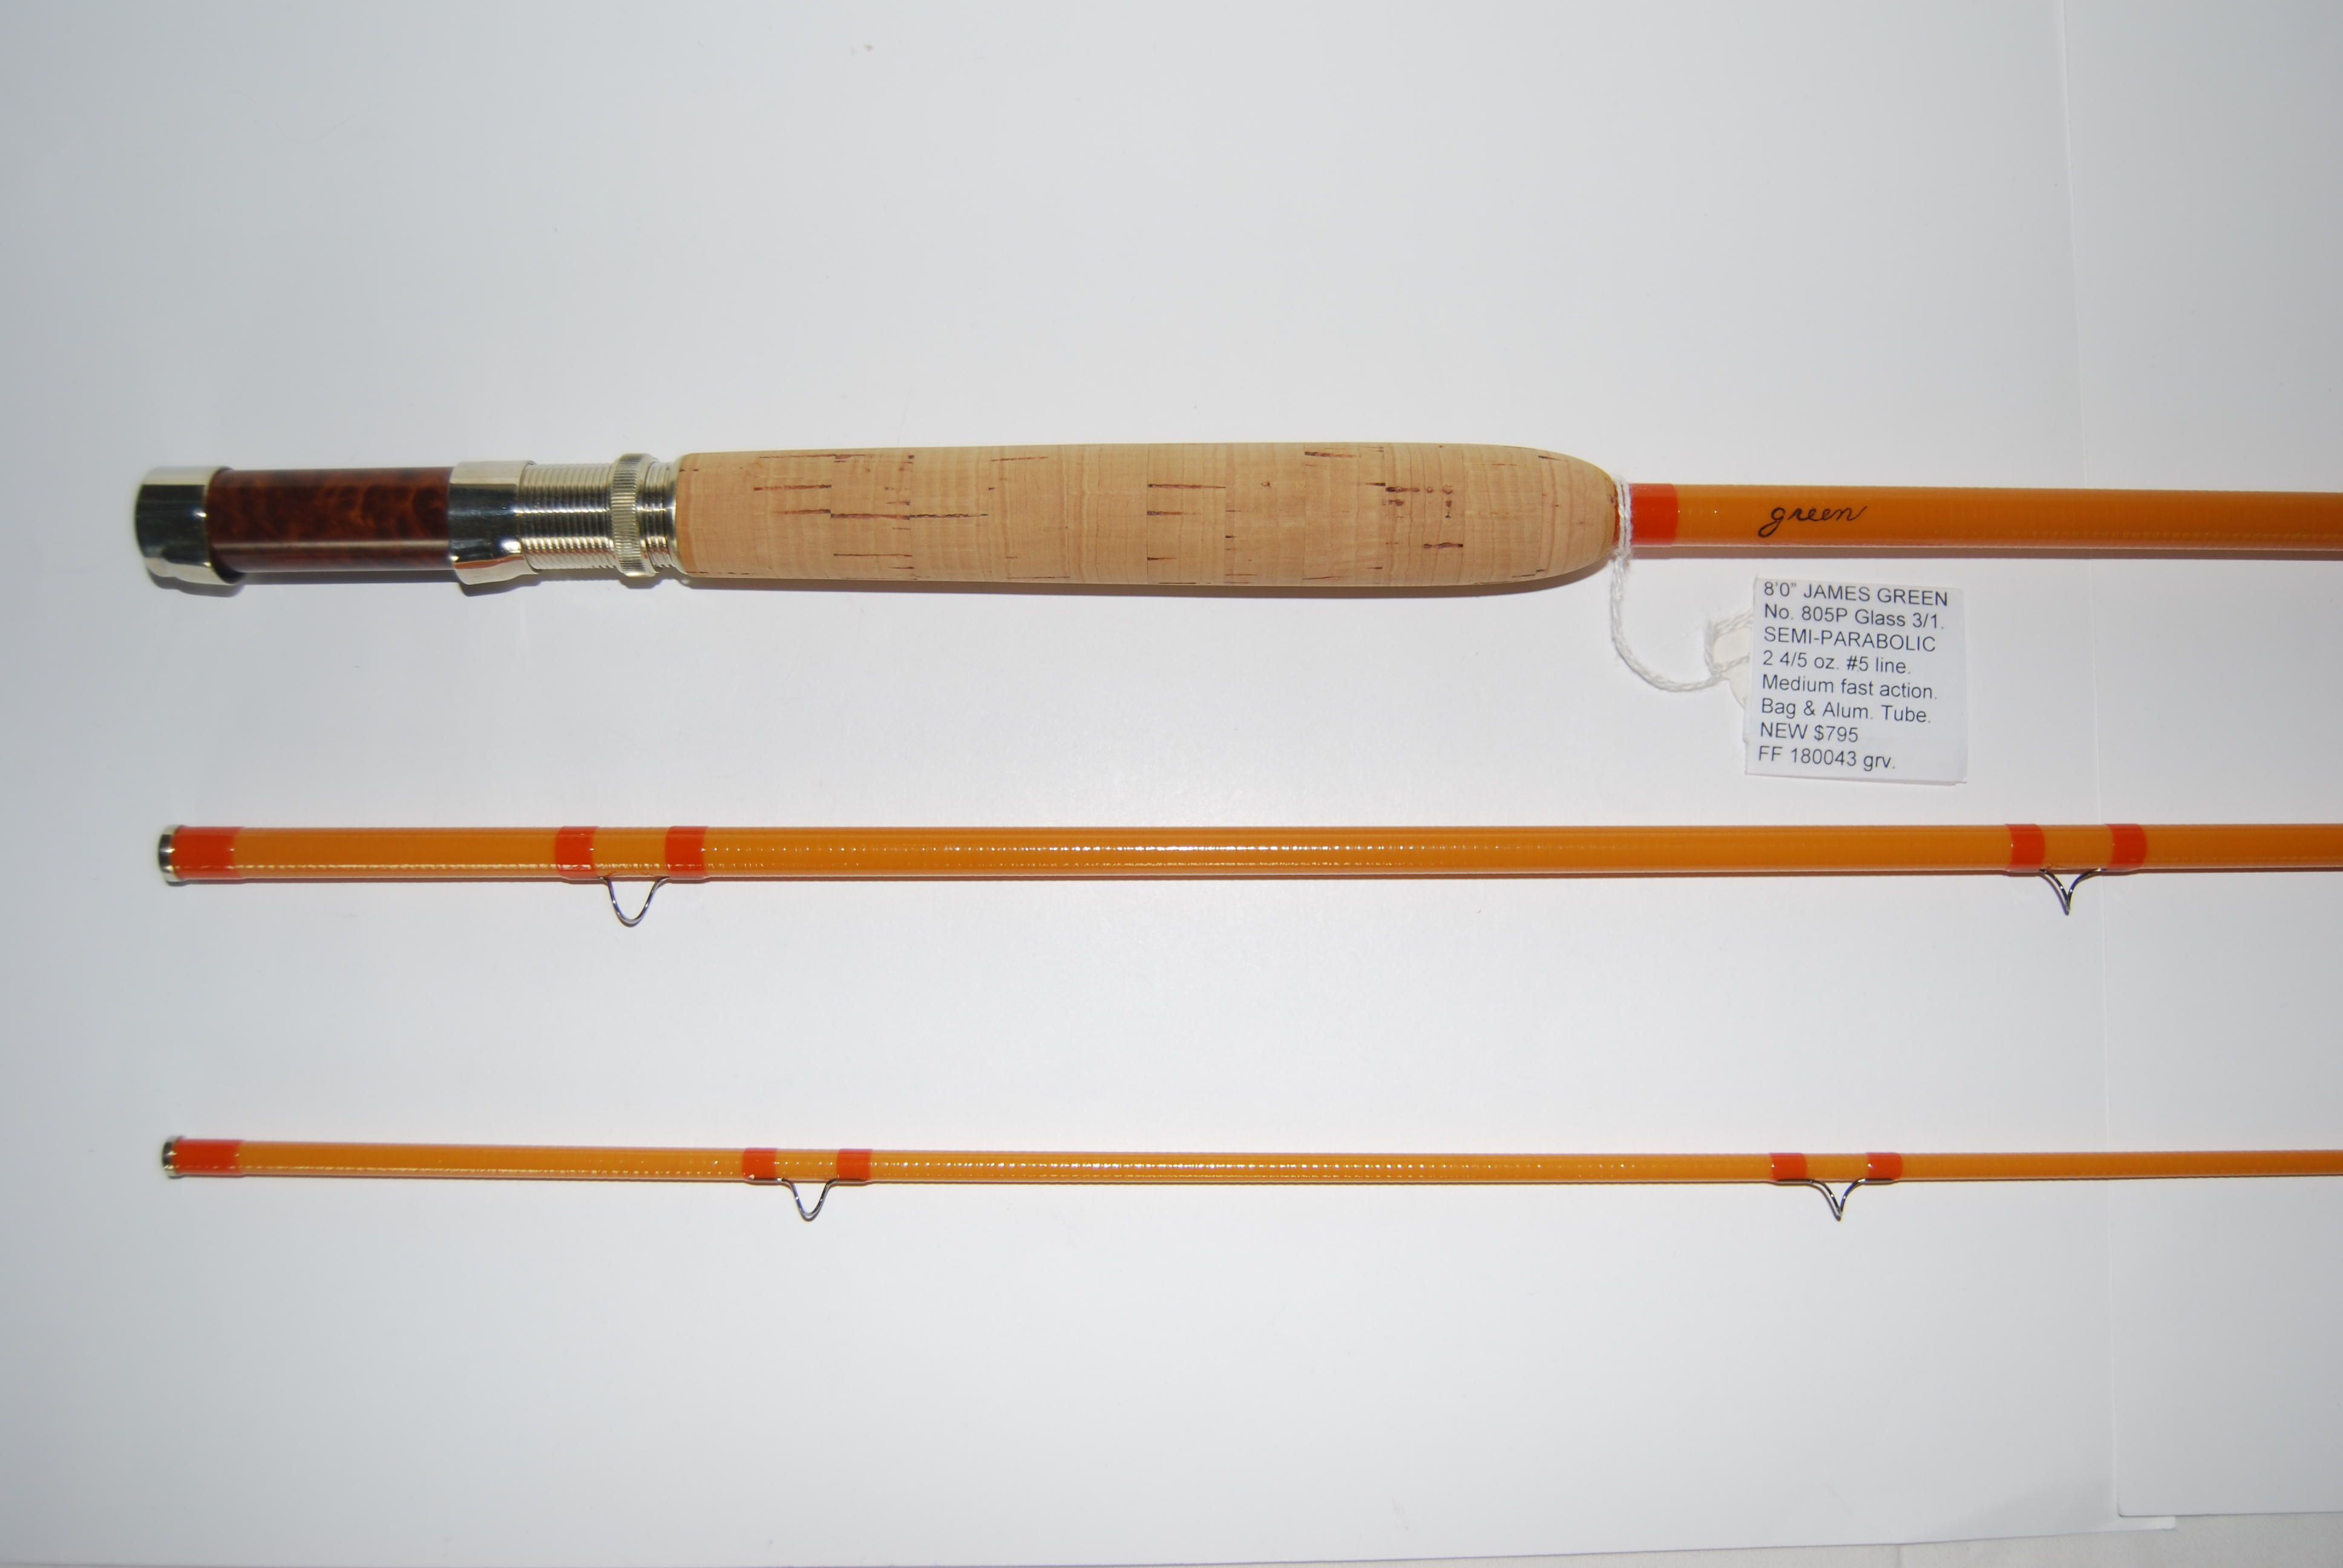 "Image for 8'0"" JAMES GREEN SEMI-PARABOLIC No.805P Glass 3/1. 2 3/4 oz. #5 line. Unsanded medium fast action yellow glass; D/L Bellinger bright screw lock over burl Redwood into bright cap"